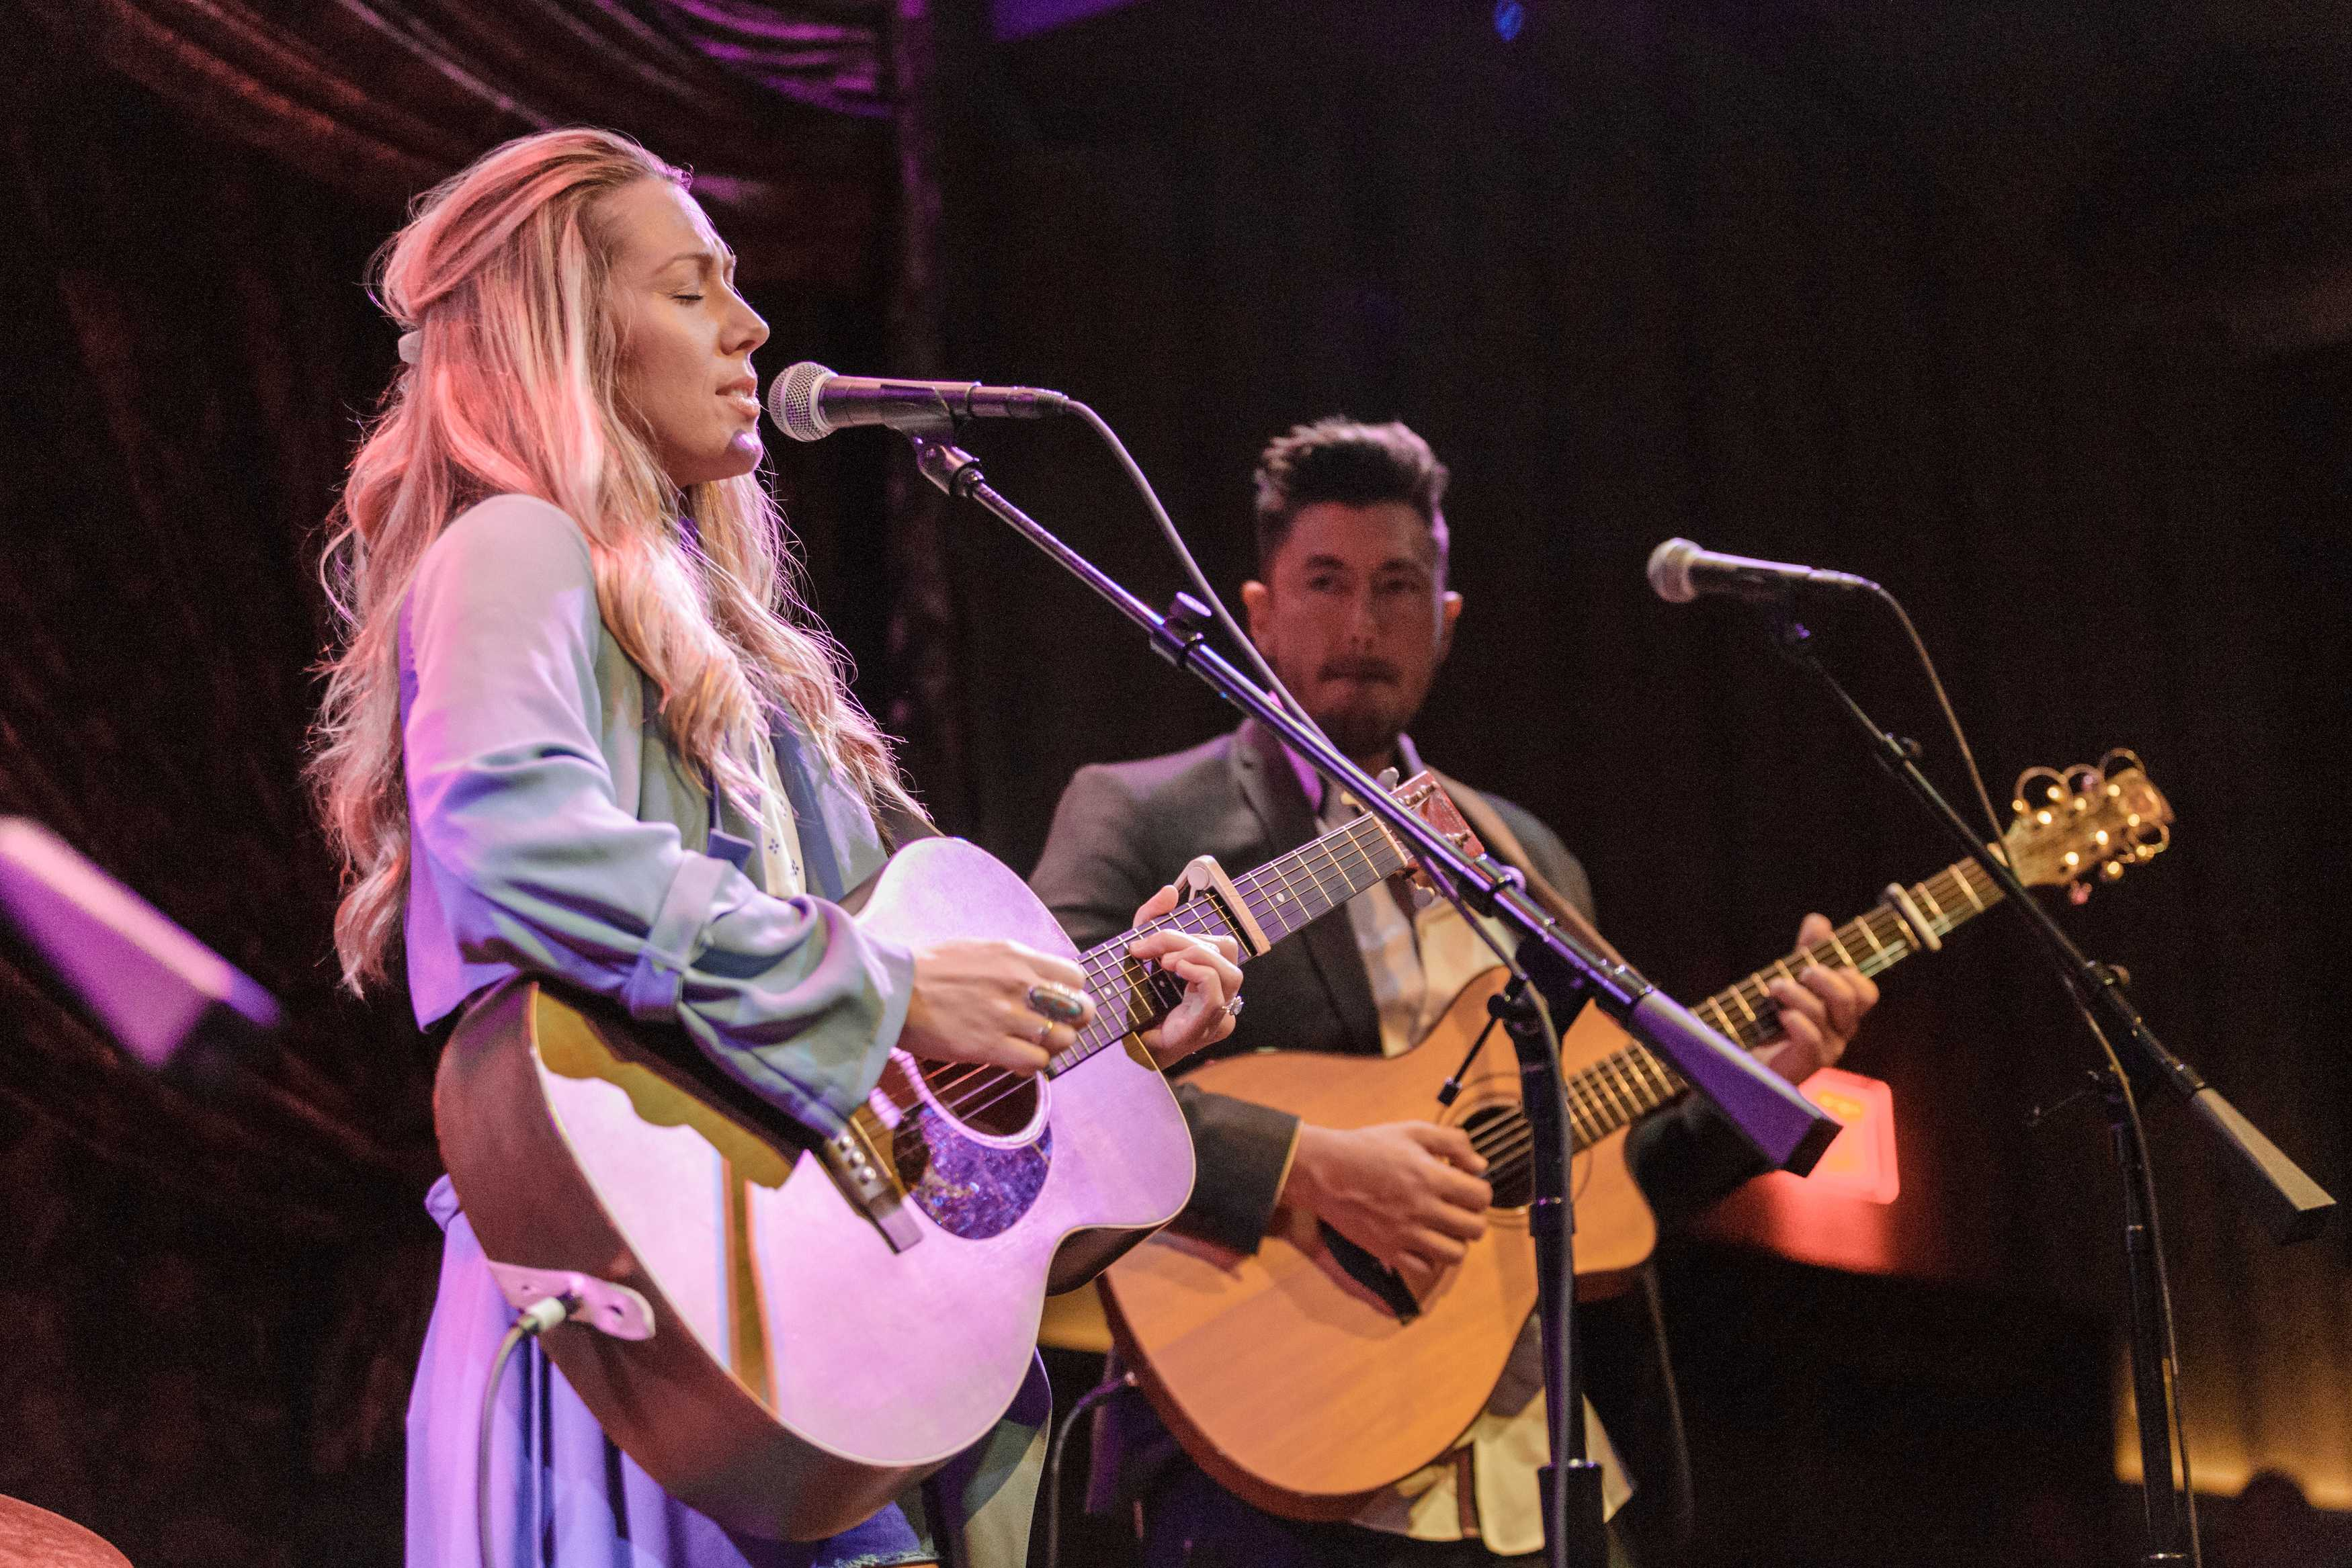 Introducing Colbie Caillat and her new band, Gone West